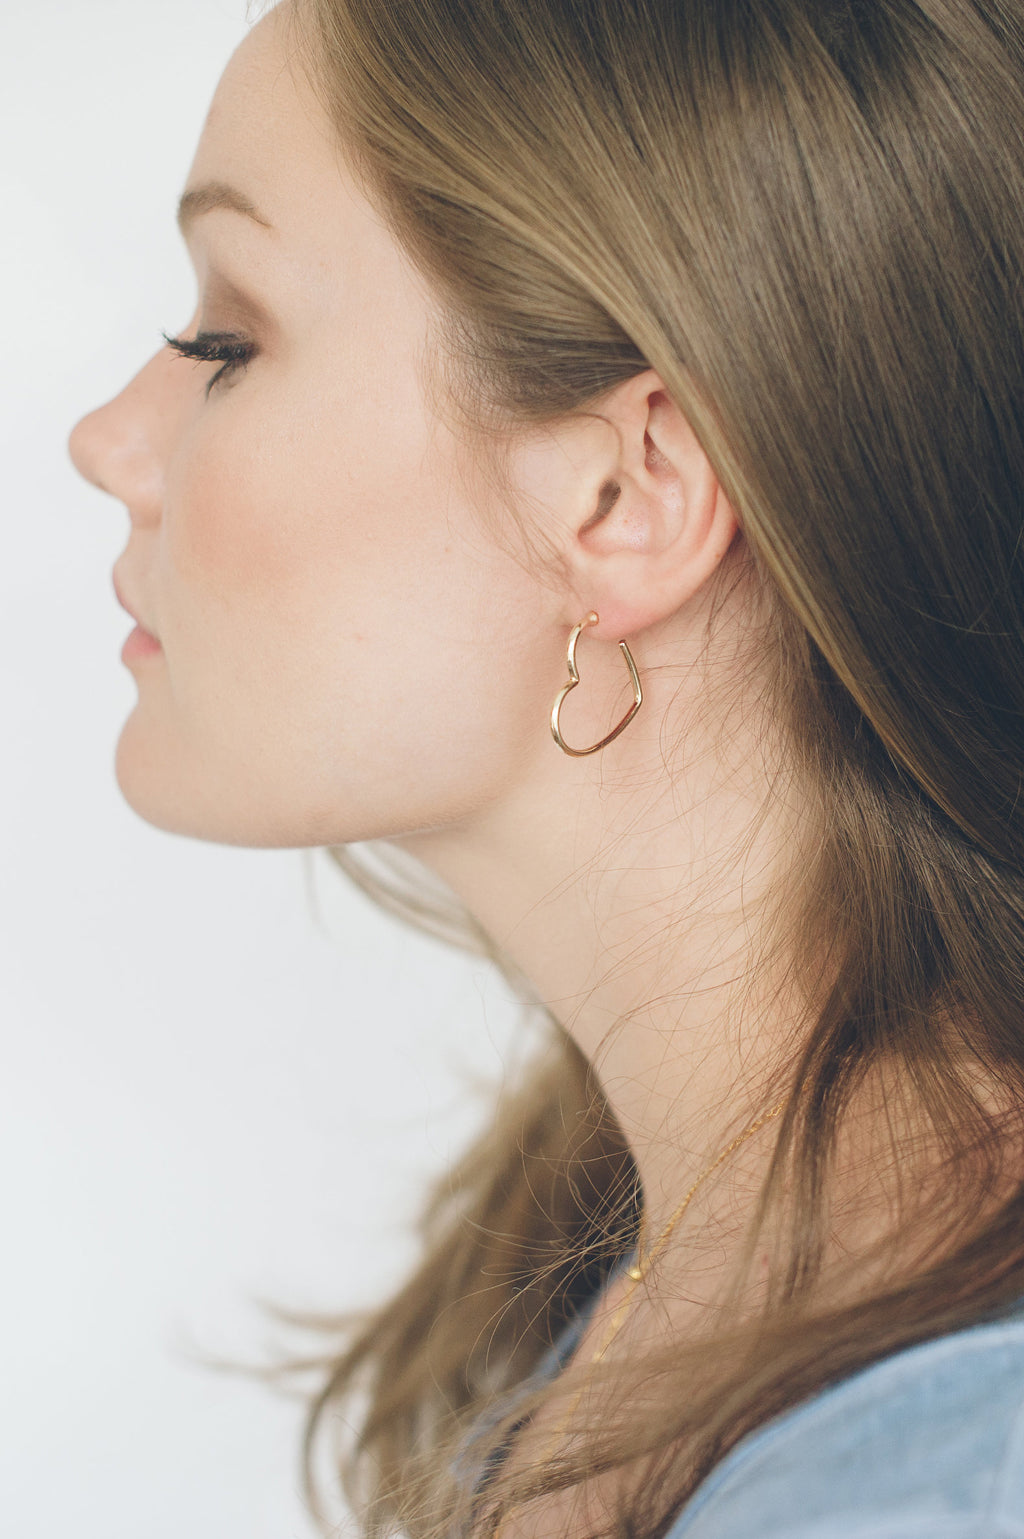 Beck & Boosh heart shaped hoops in gold and silver simple and clean design fashion jewerly